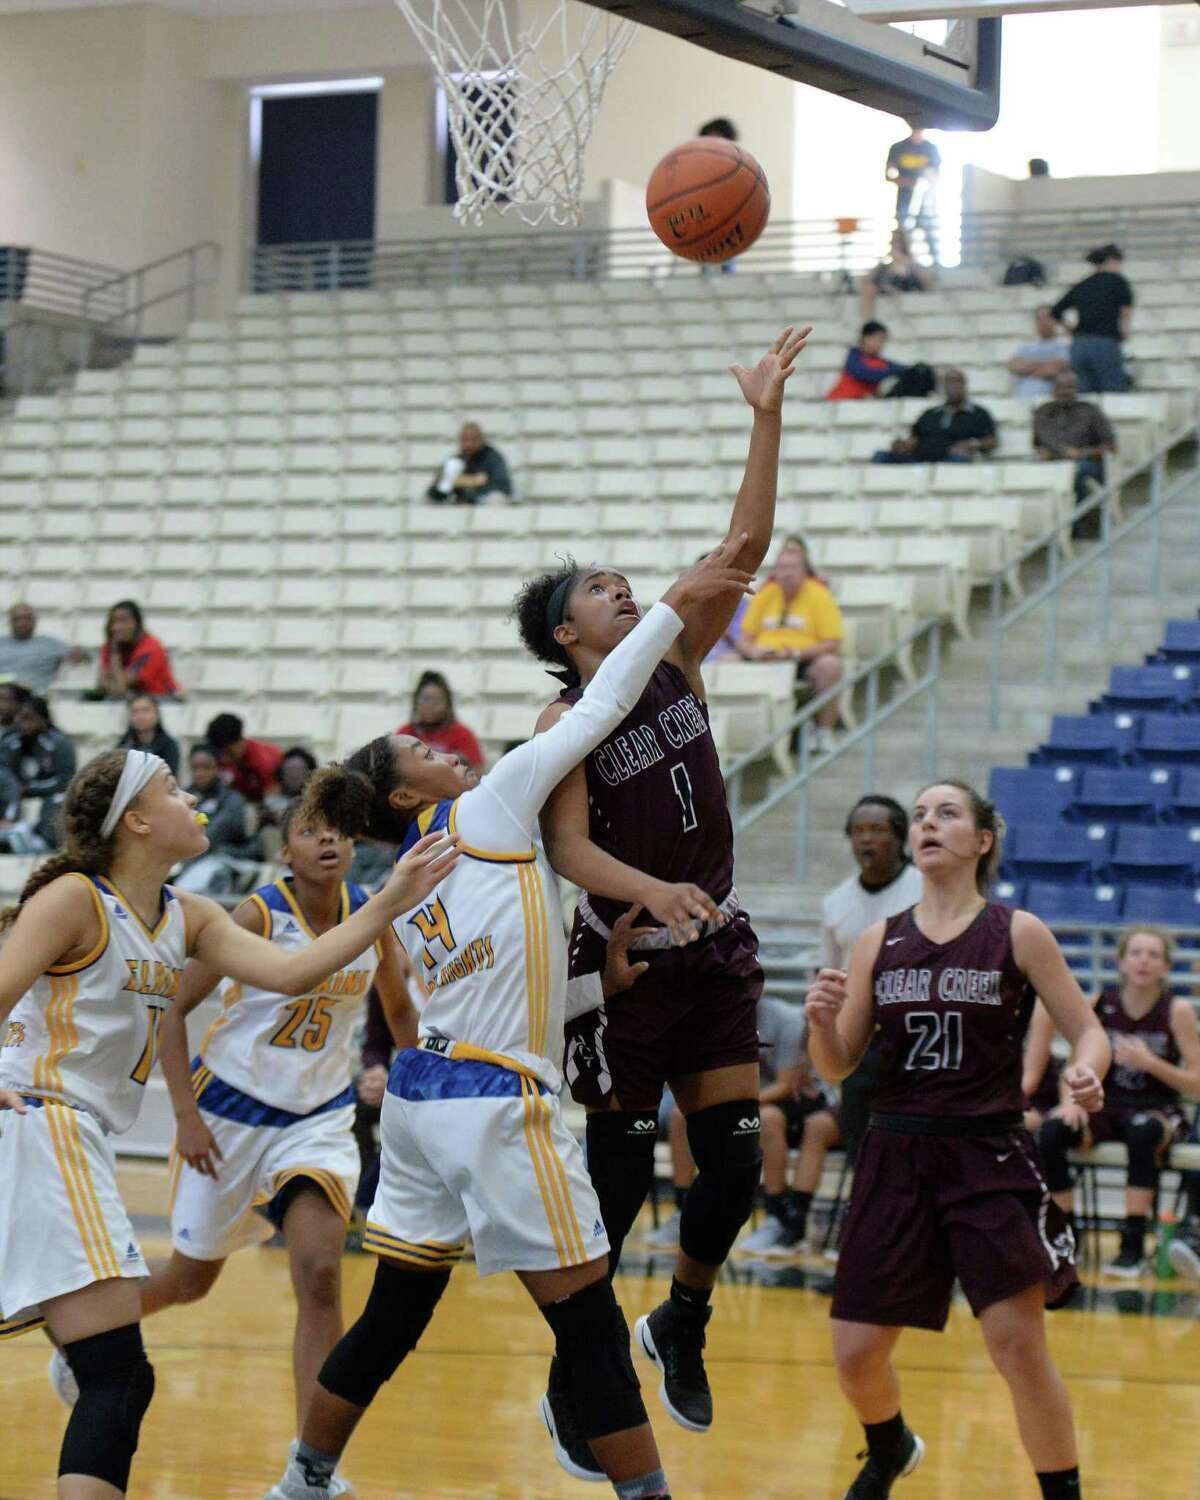 Keondra White (1) of Clear Creek attempts a lay-up in the second half of a basketball game between the Clear Creek Wildcats and the Elkins Knights during the Ft. Bend ISD Varsity Girls Tournament on Thursday November 17, 2016 at the Buddy Hopson Field House, Missouri City, TX.